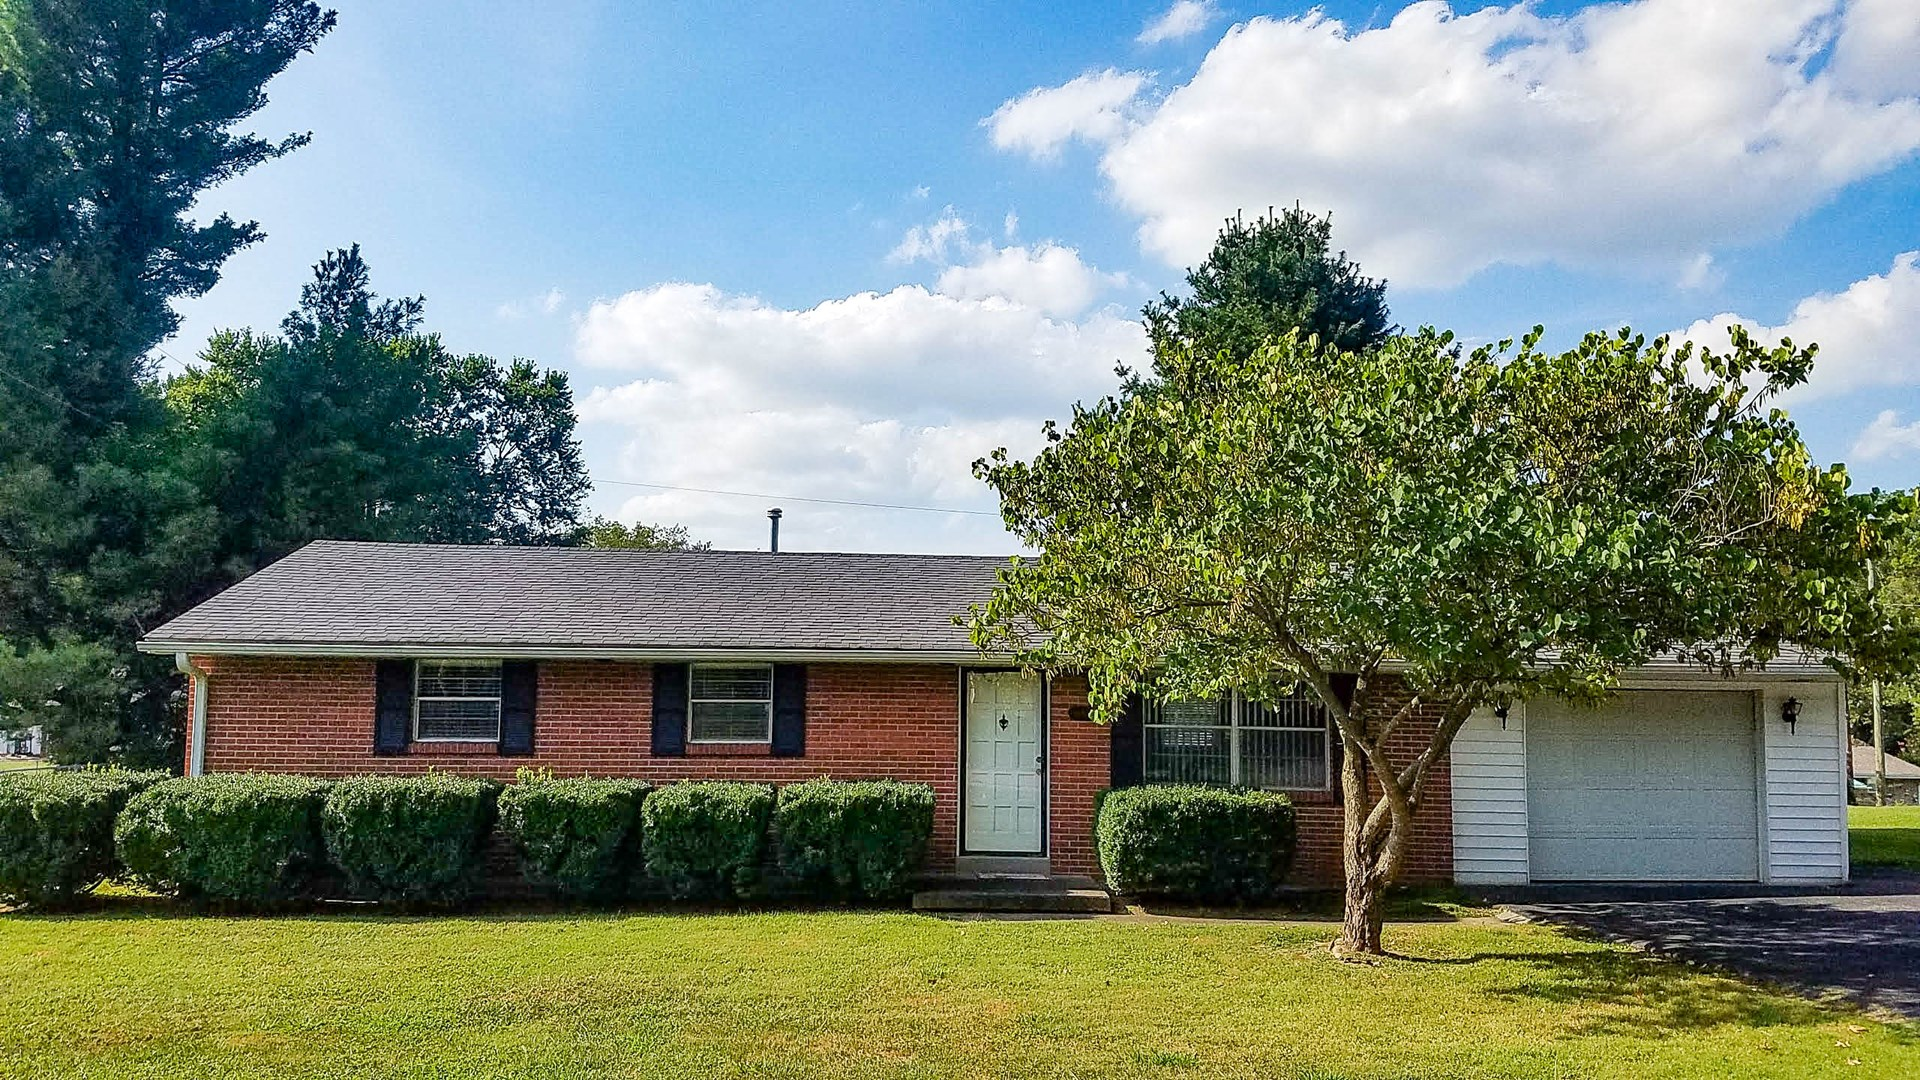 Home in Somerset KY for sale - Brick Ranch 3BR - 1.5 bath